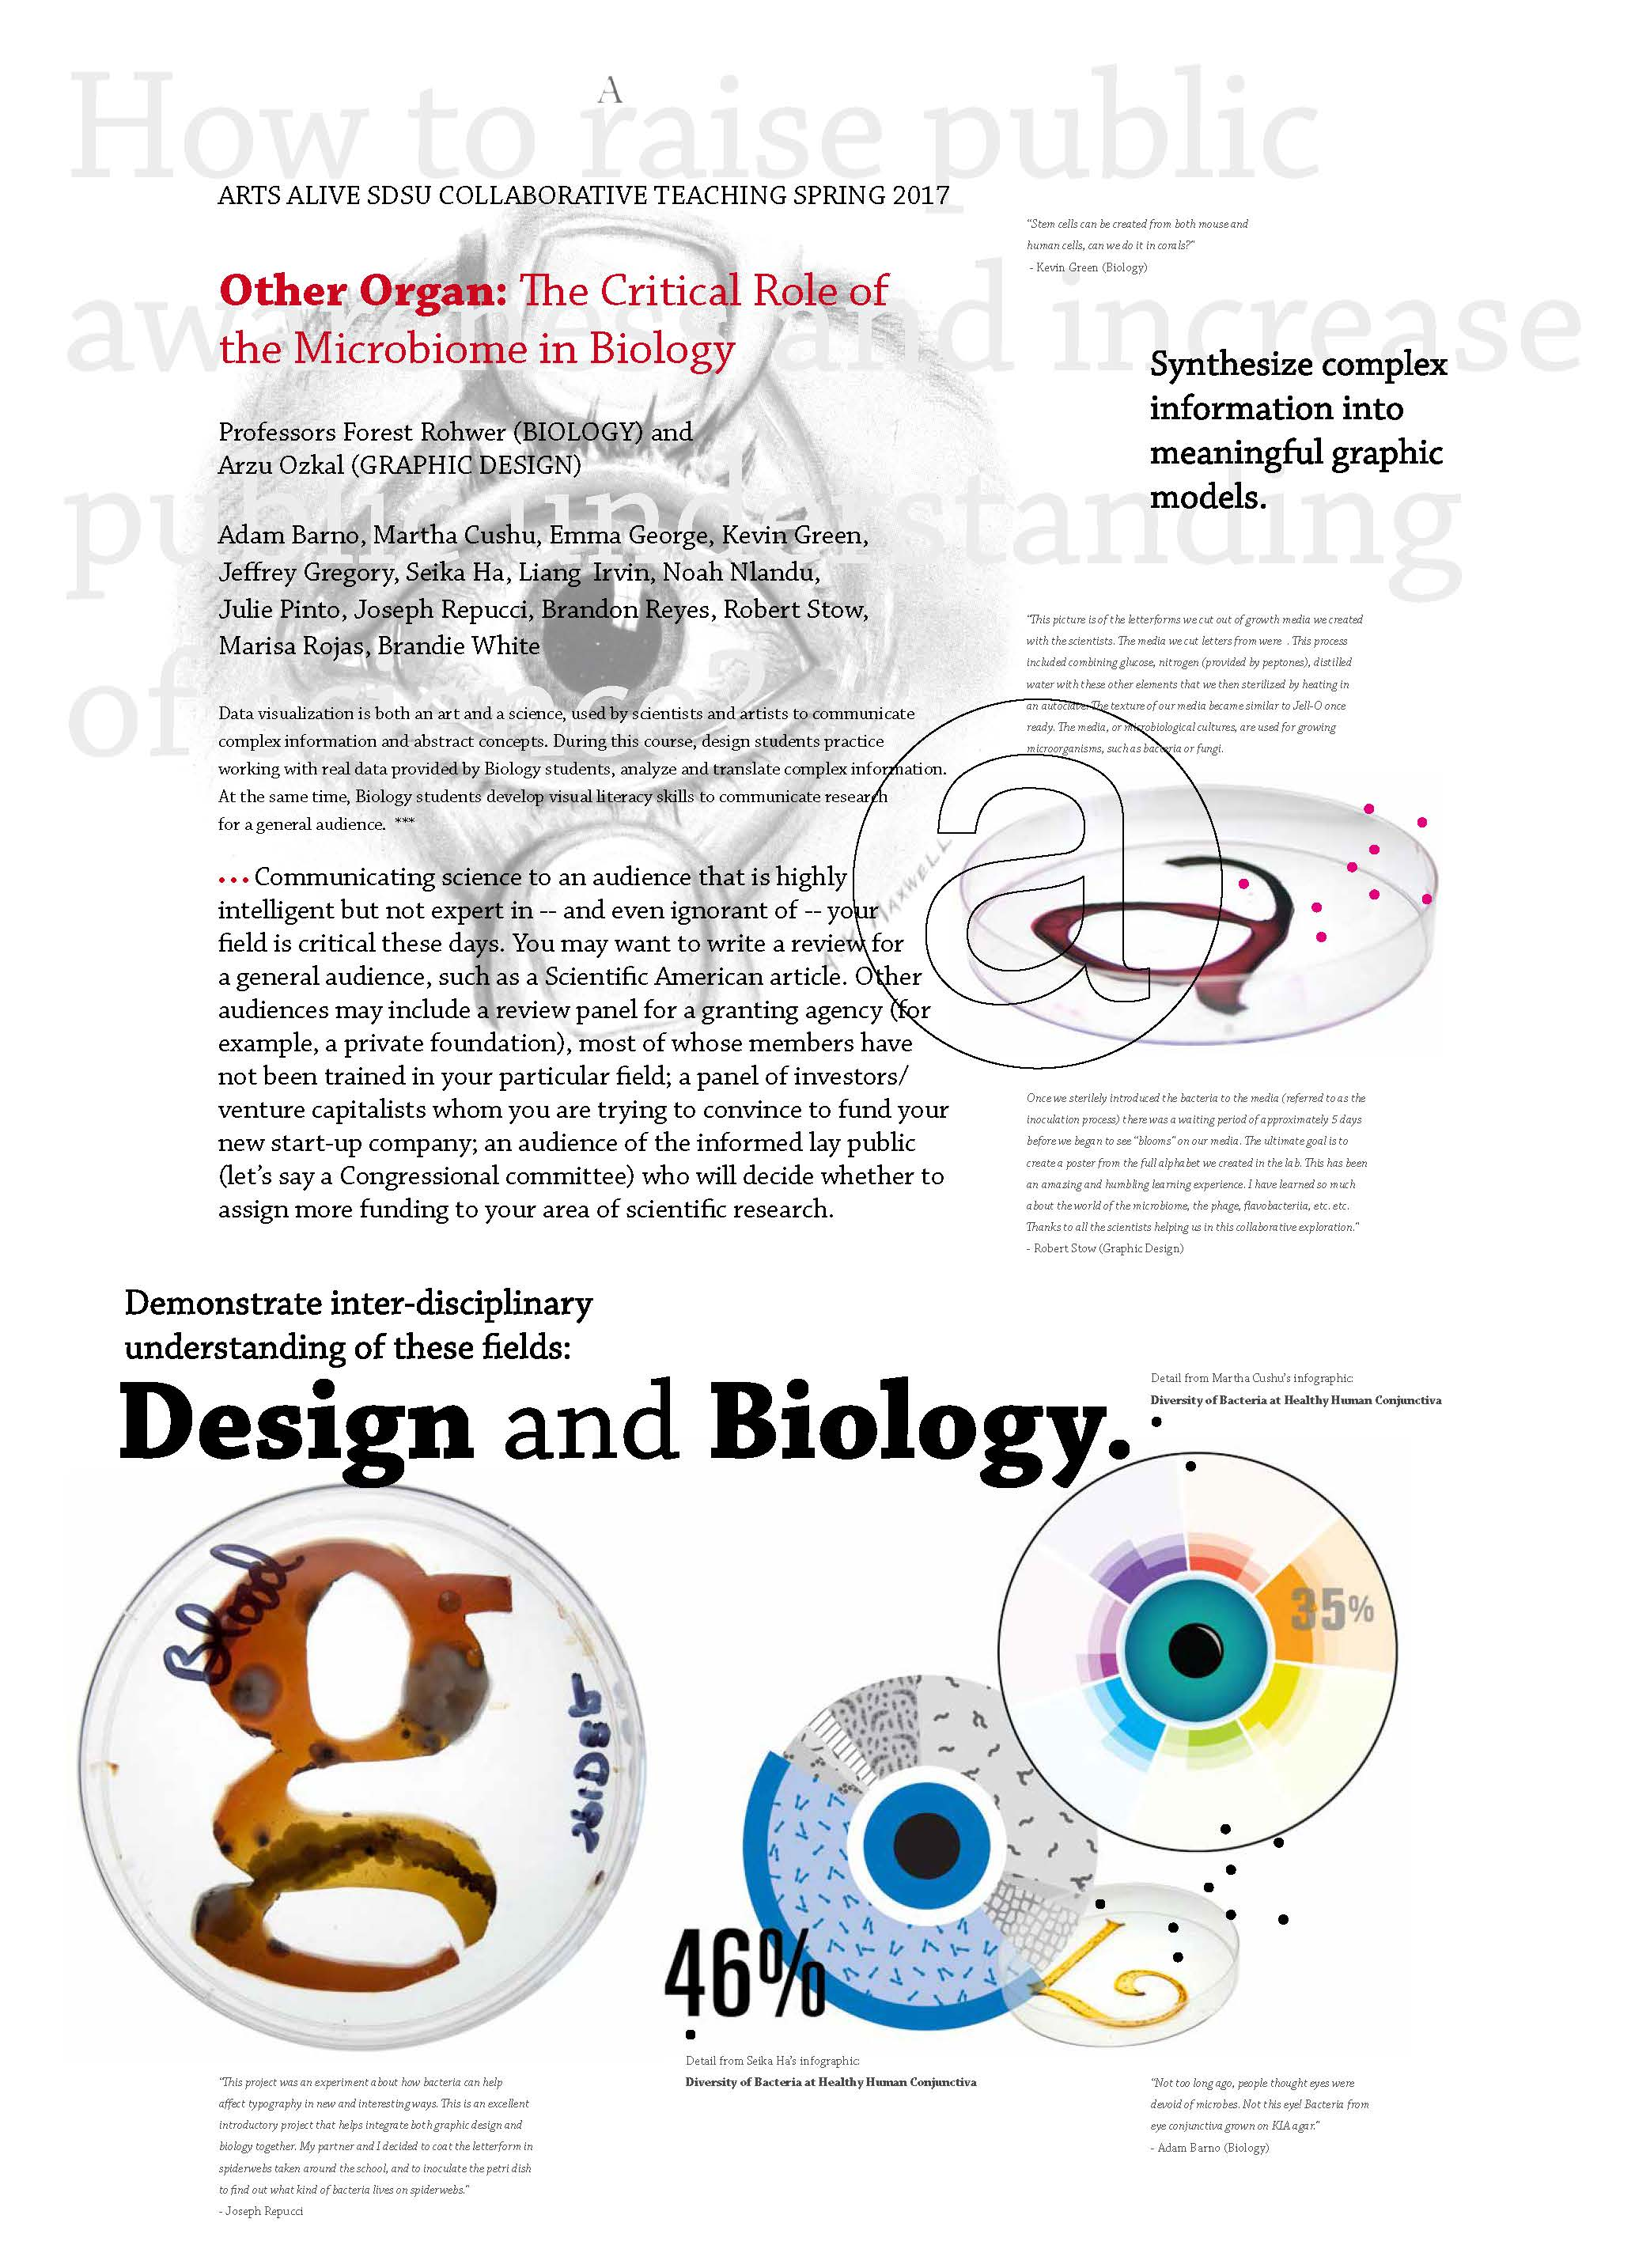 1098 t sdsu - Microbiology And Art Join Forces